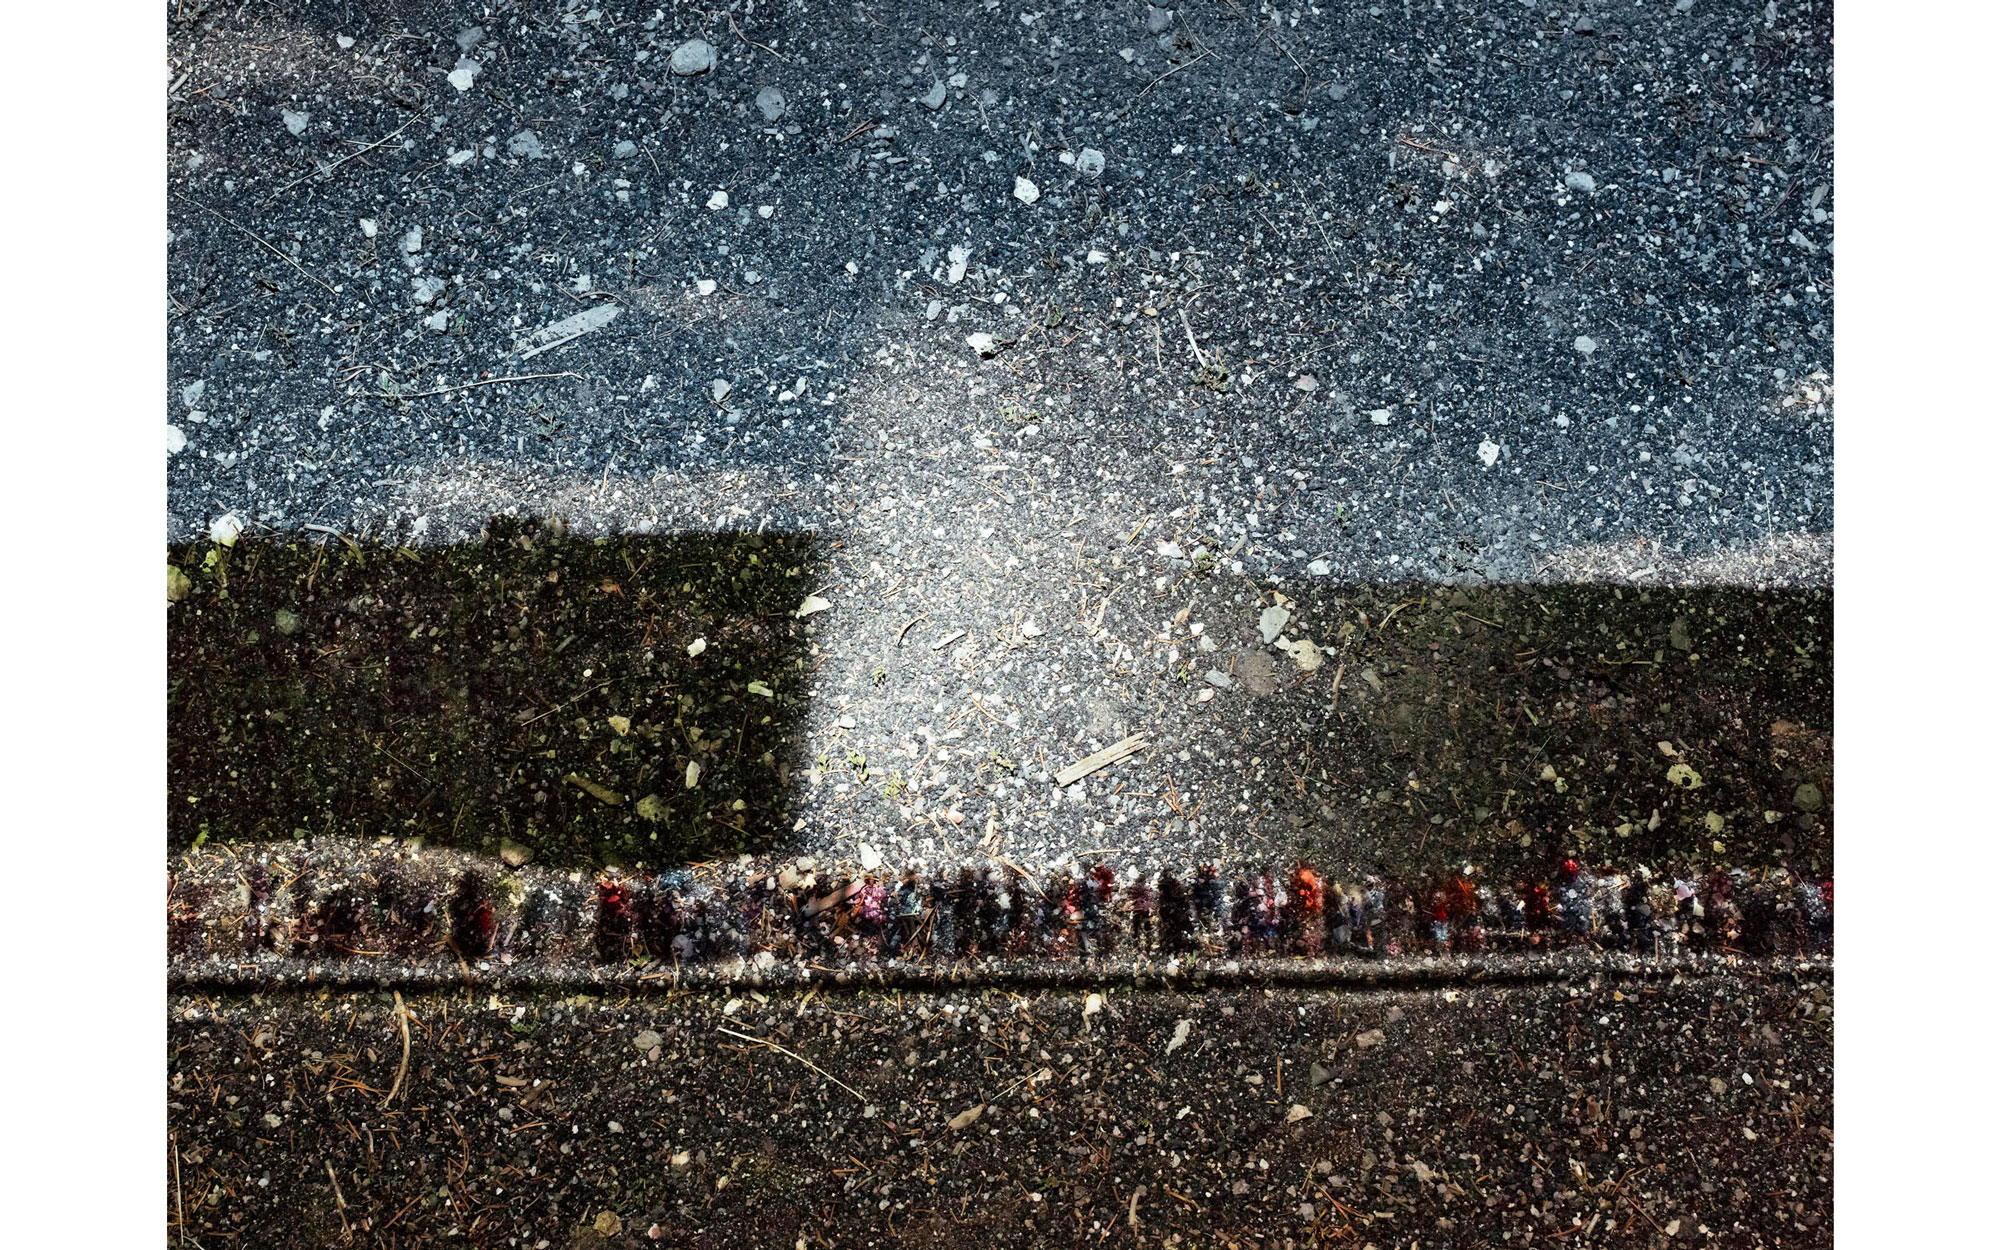 Tent-Camera Image on Ground: View of Old Faithful, Yellowstone National Park, Wyoming, 2011